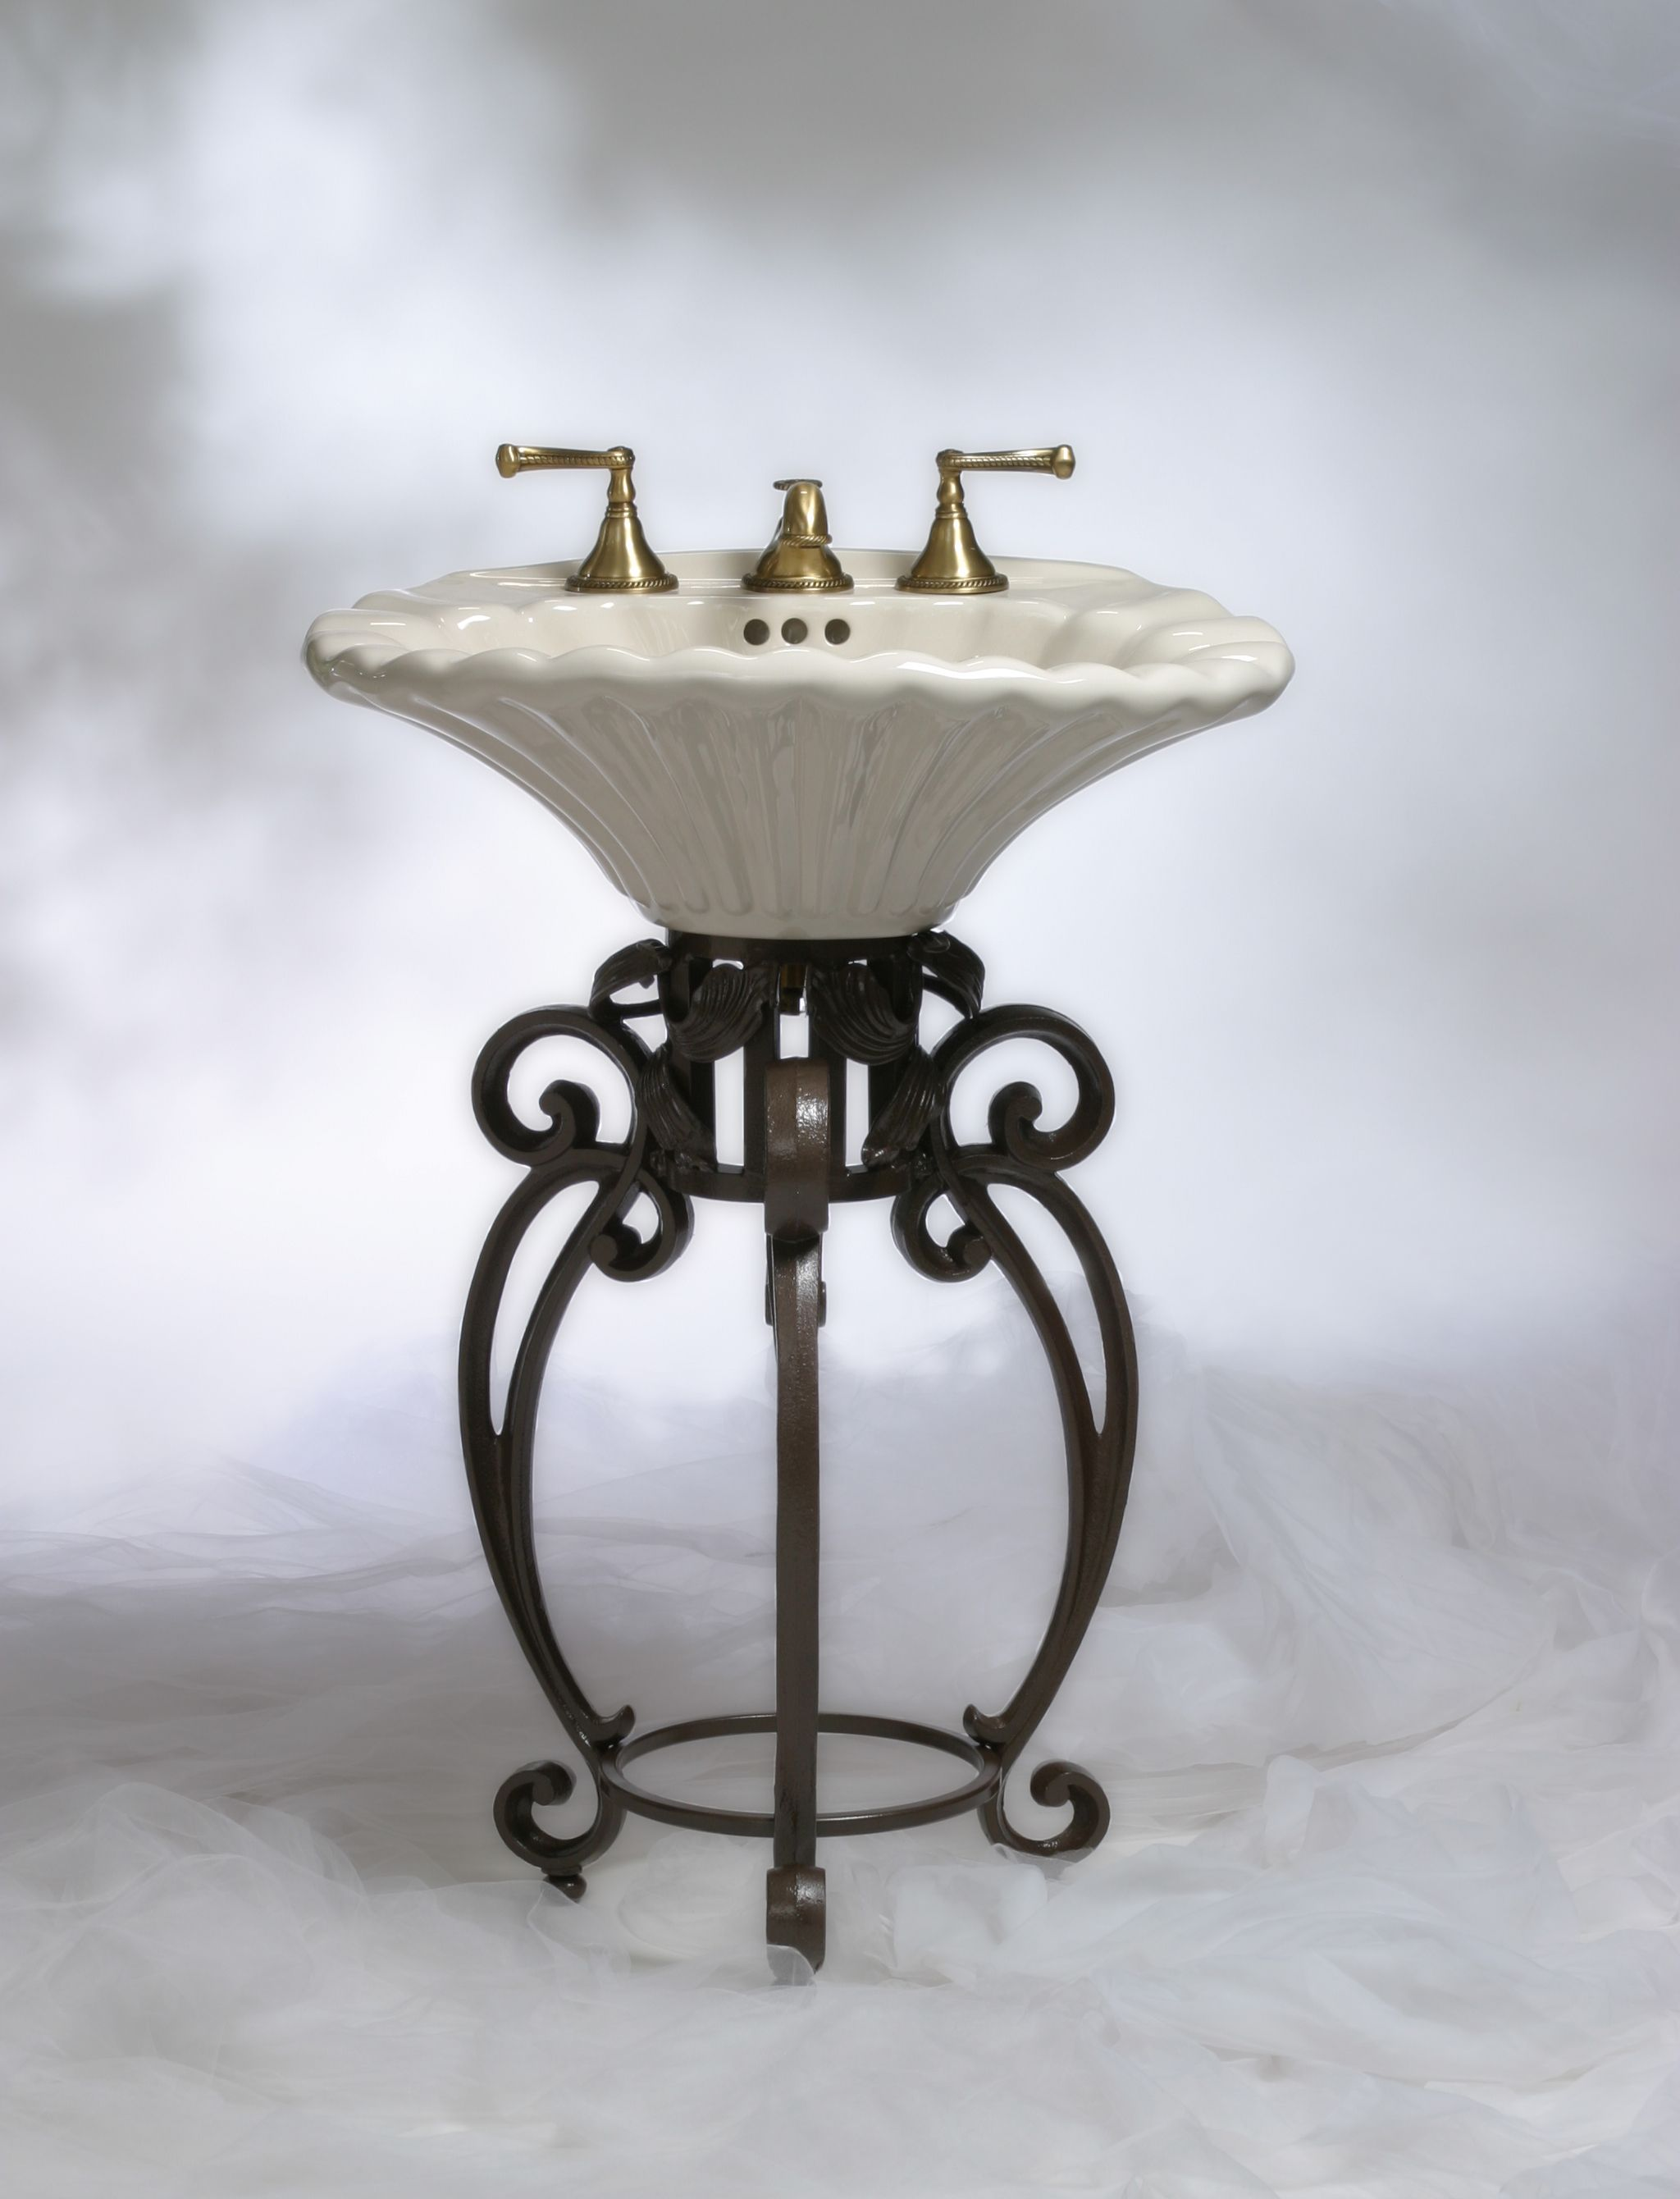 Small Pedestal Sink With Cast Iron Base And Shell Bowl An